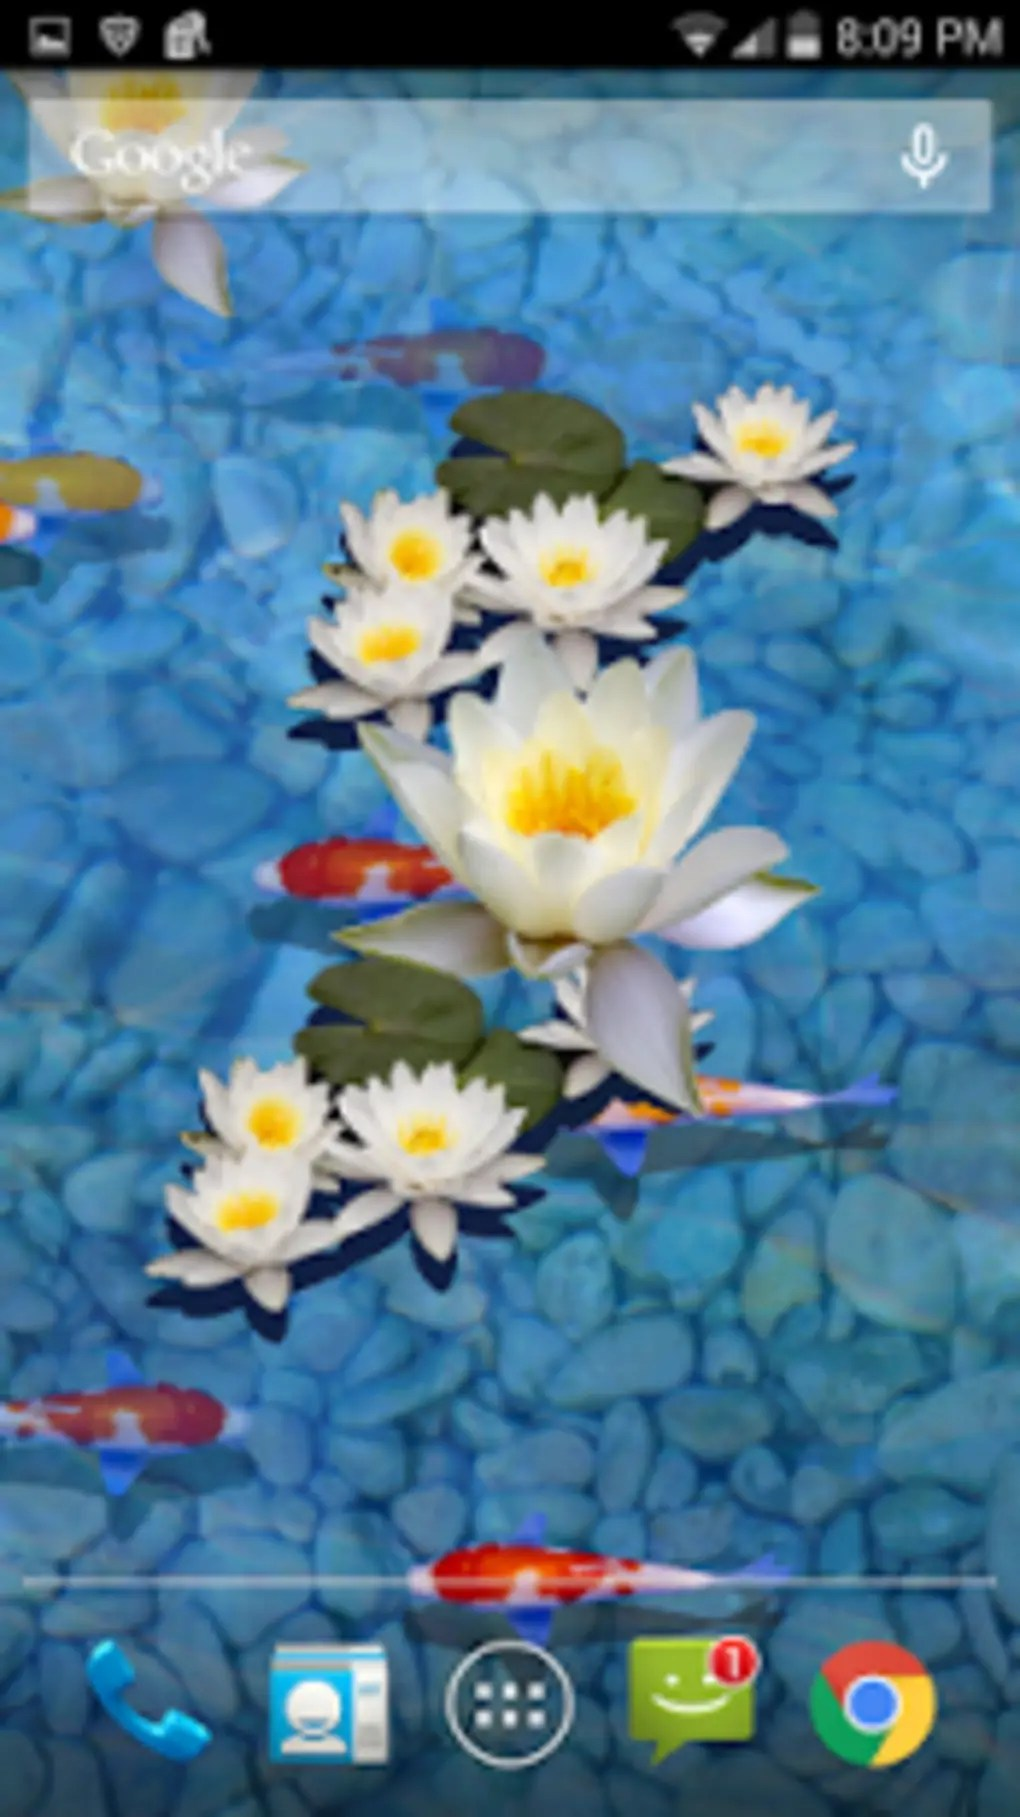 3d Koi Pond Live Wallpaper Apk 3d Fish Pond Live Wallpaper For Android Download